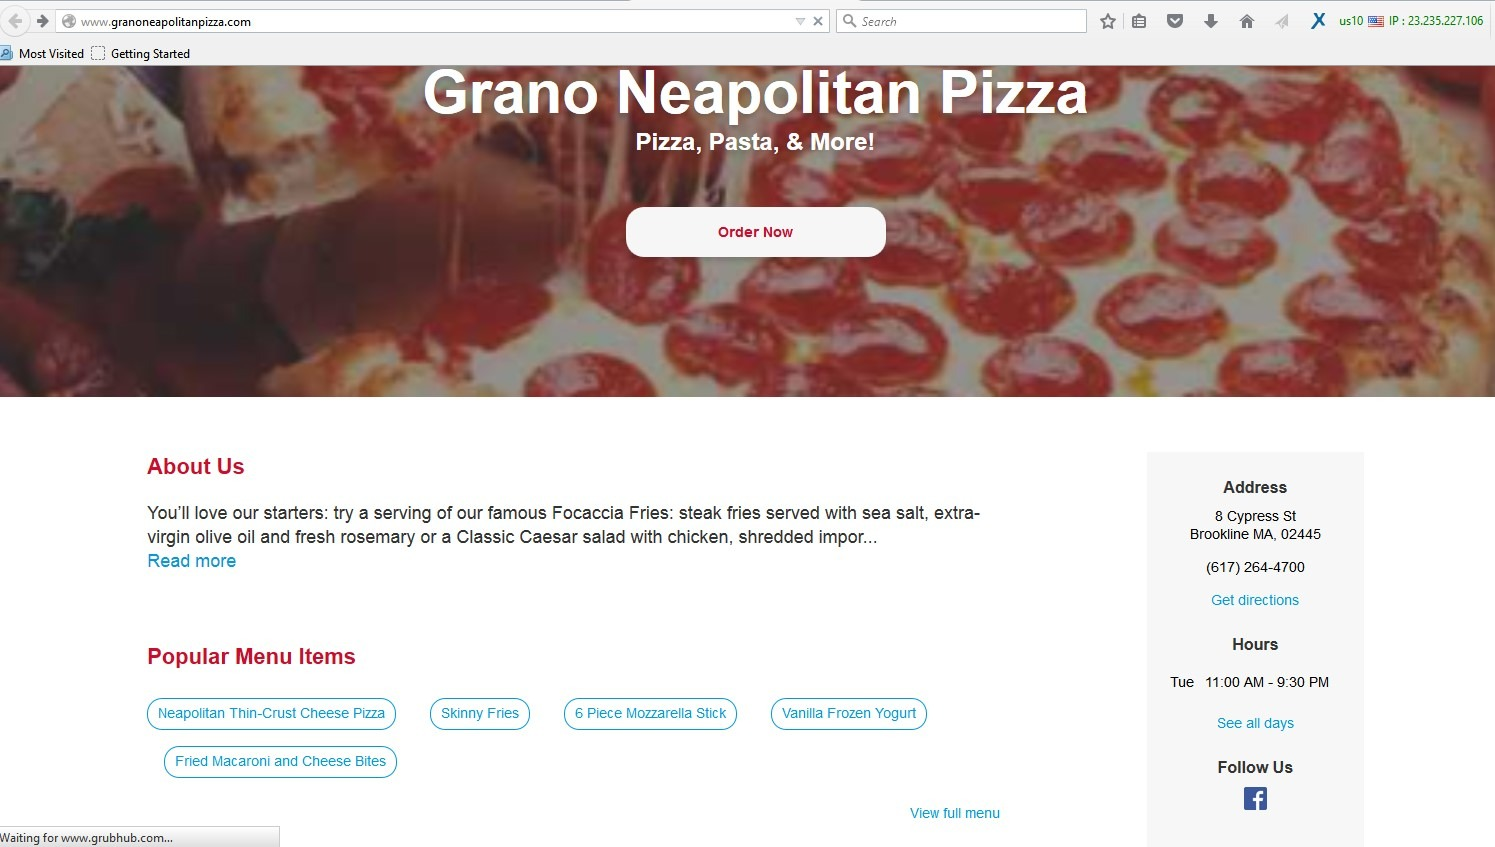 online food portals using fake restaurant websites to attract clients